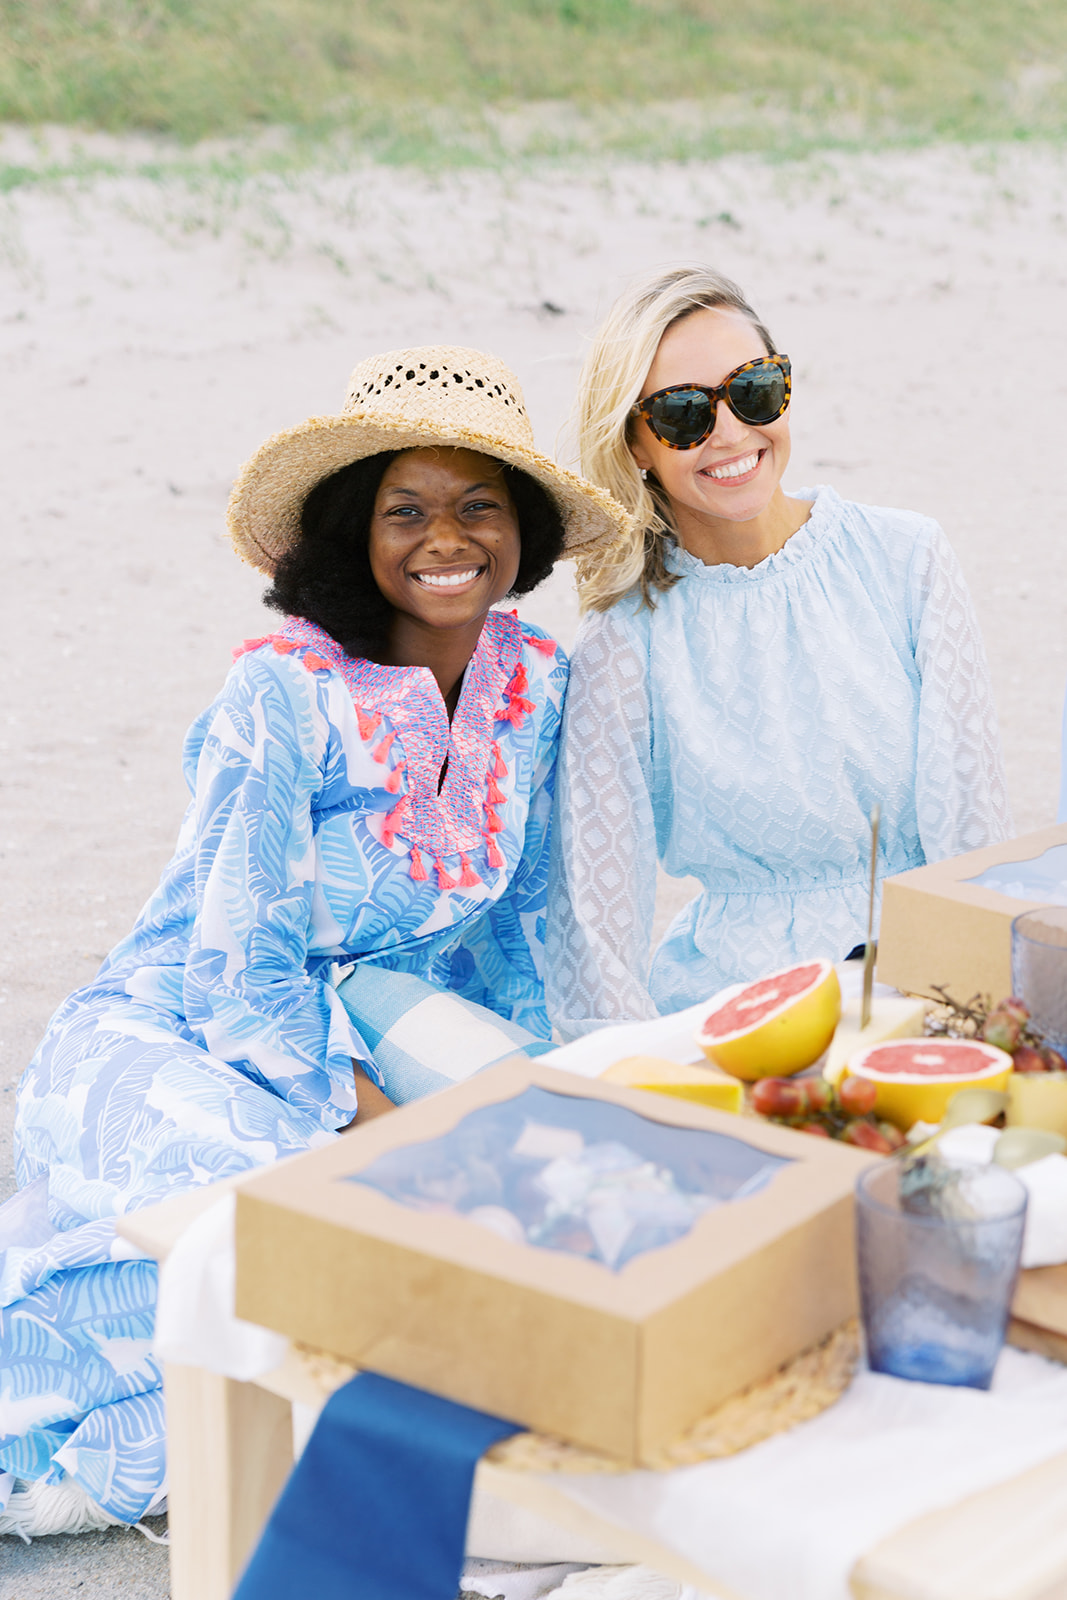 Fashion: Sail to Sable with Palm Beach Lately